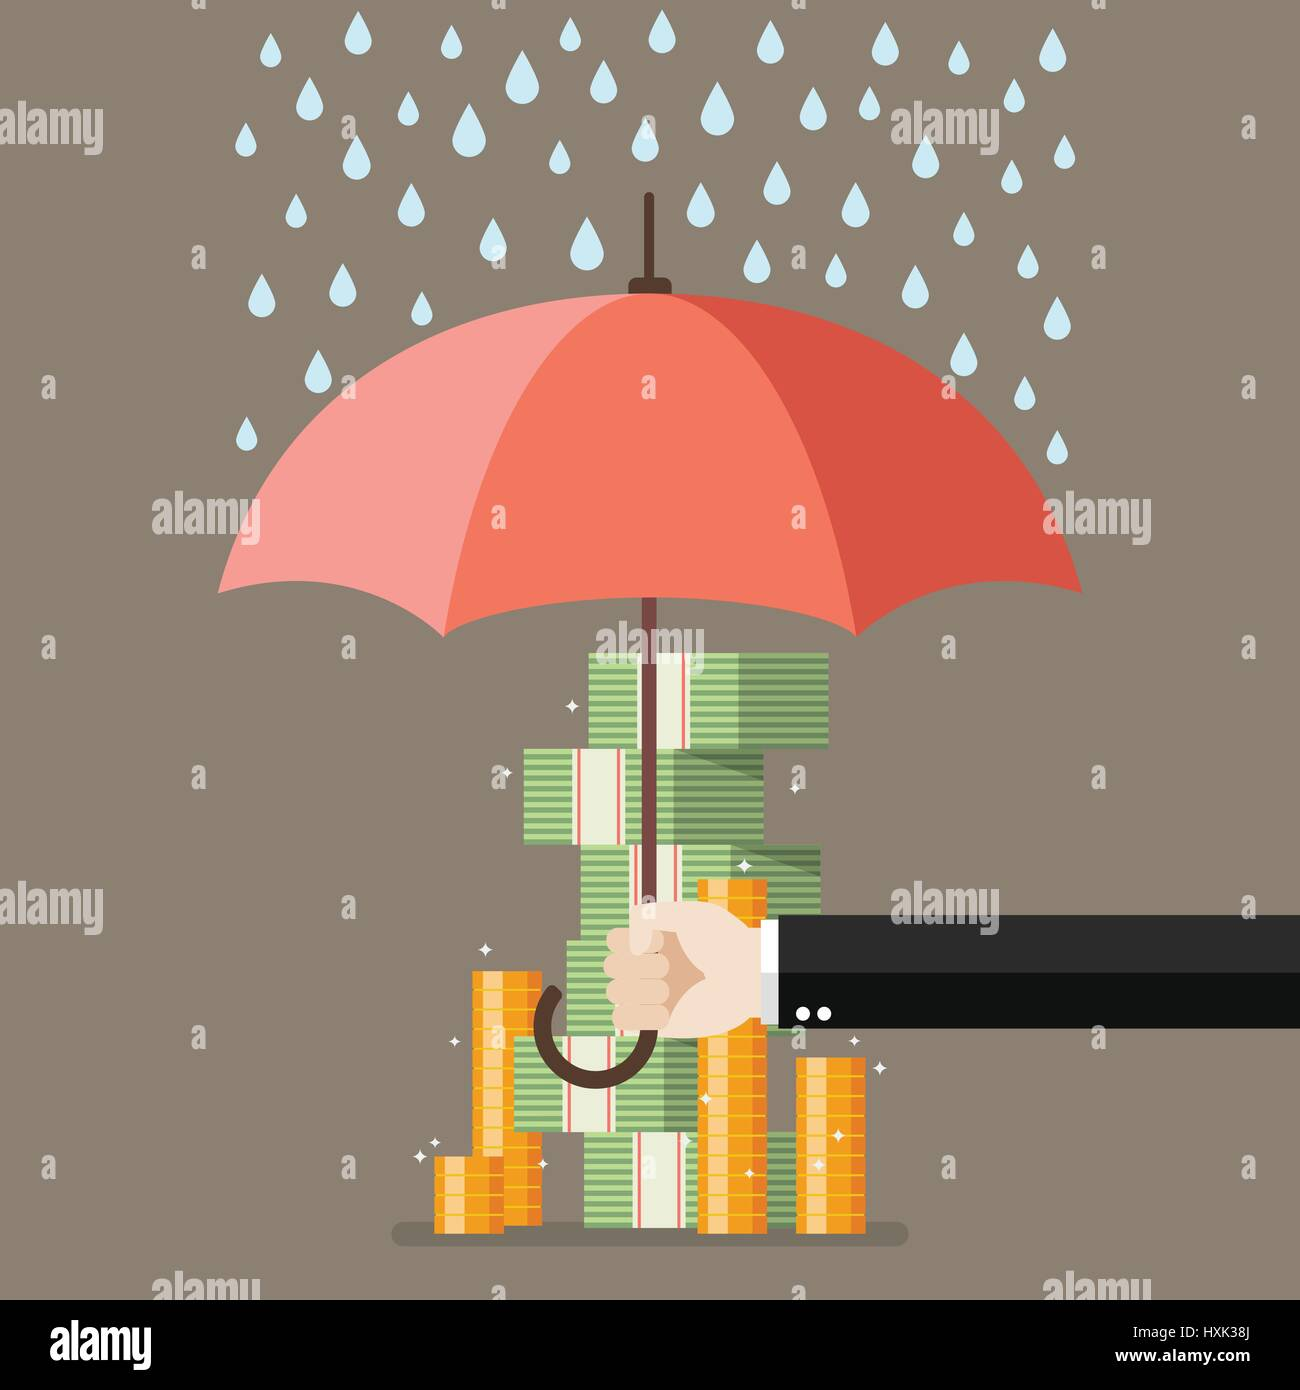 How to Prepare for Rainy (Financial) Days